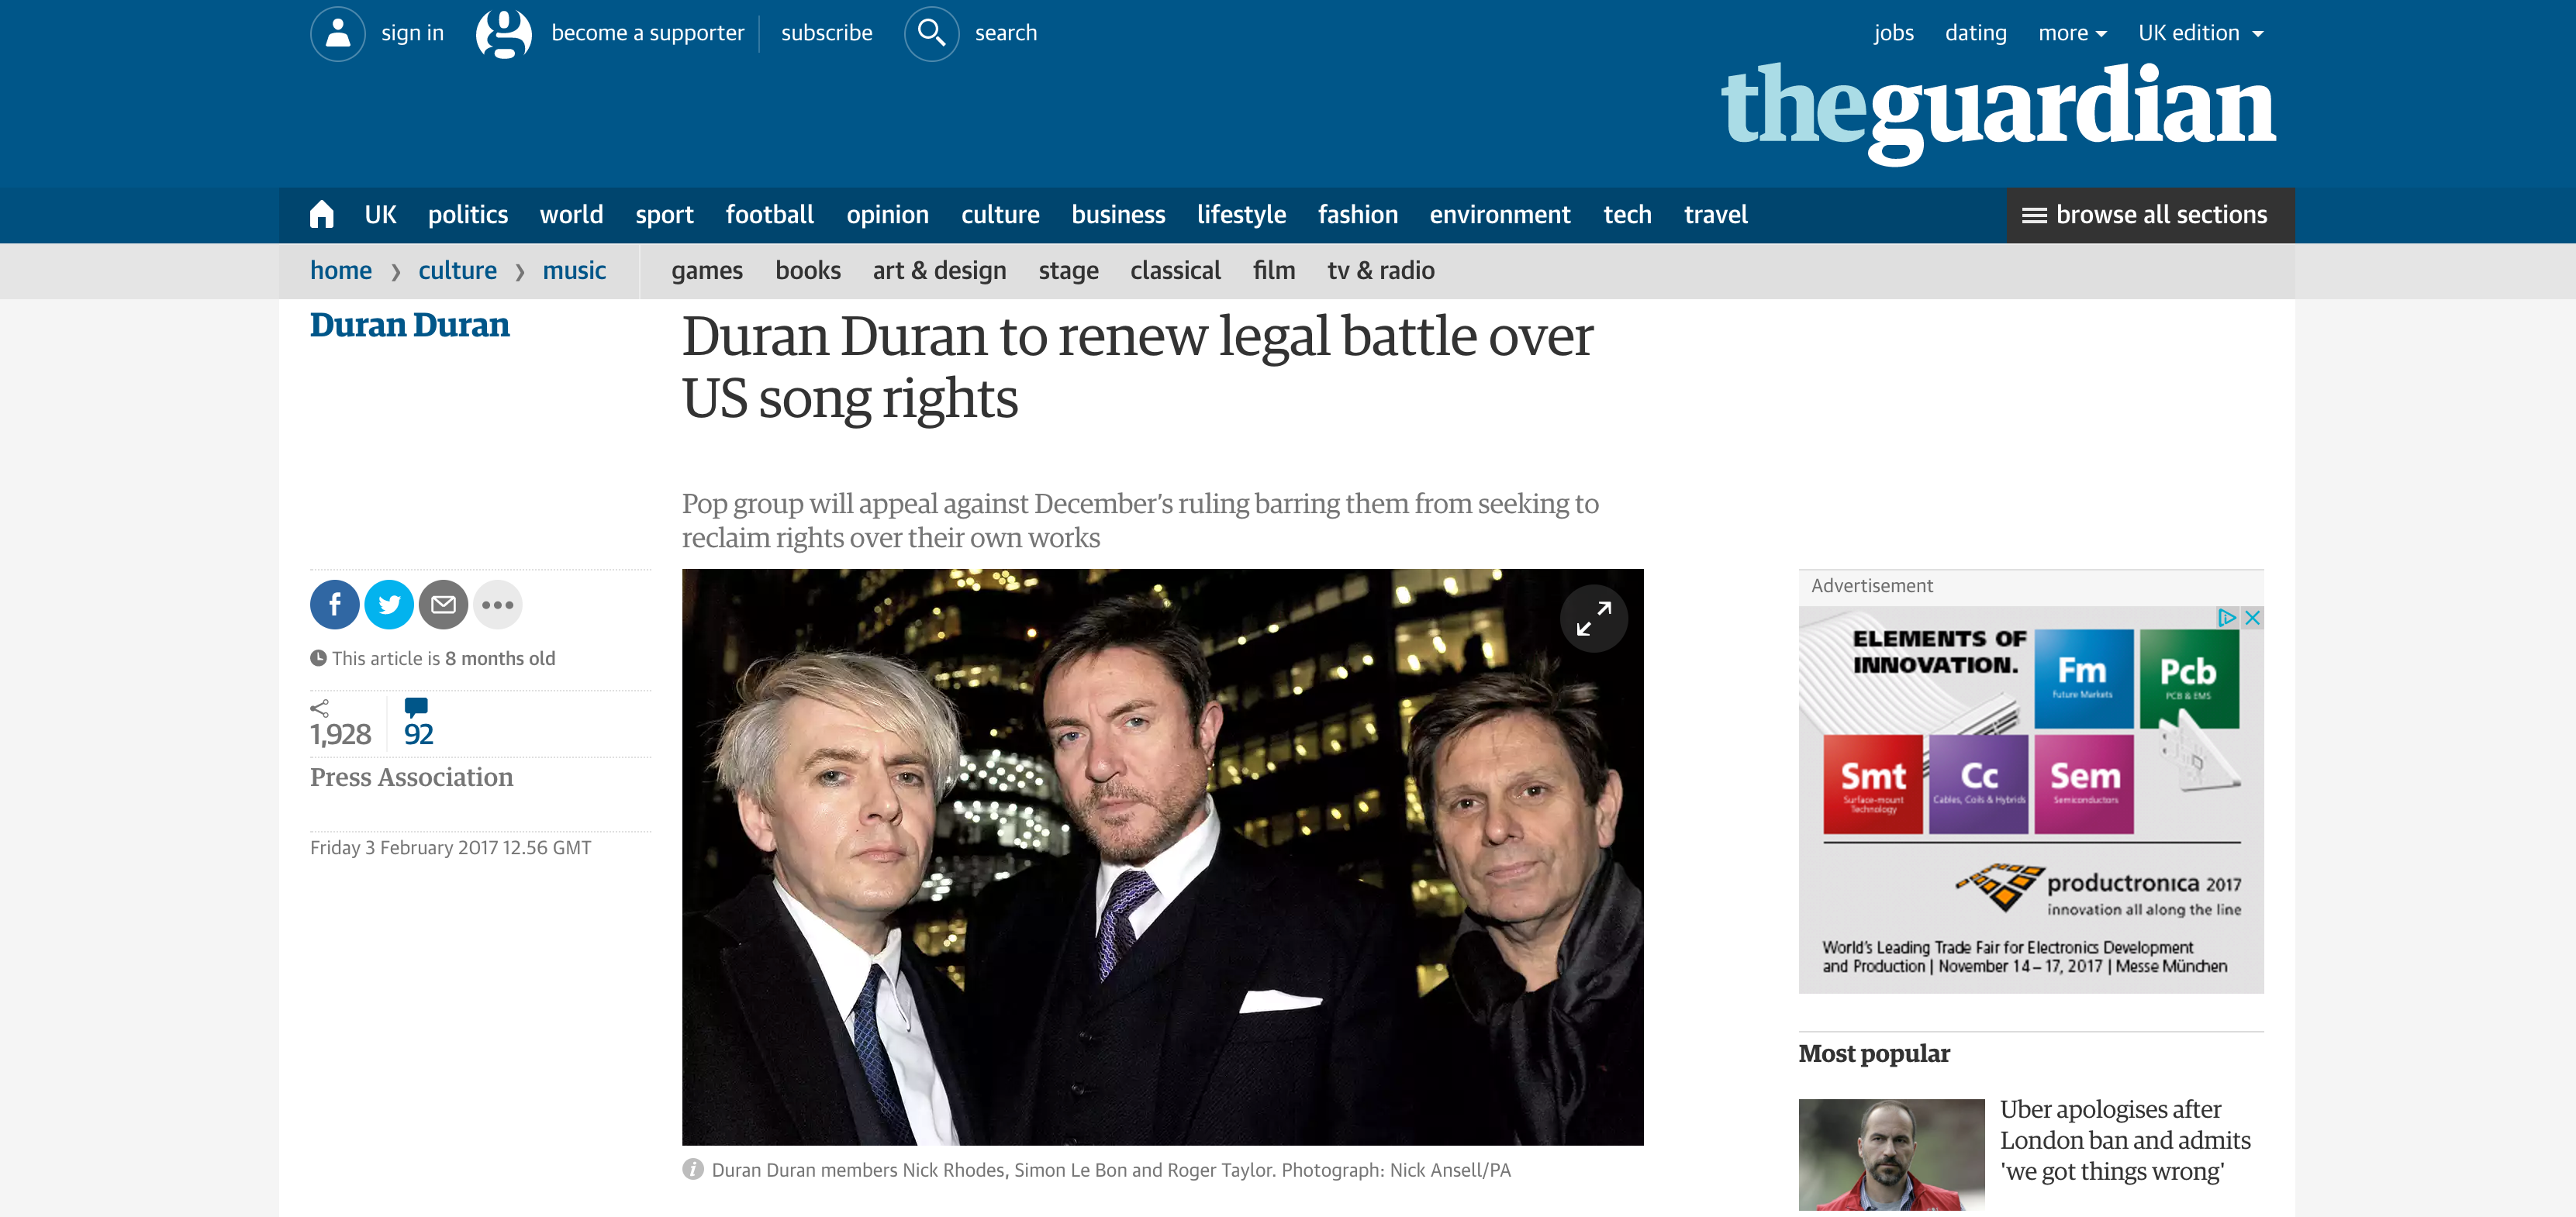 Fairness Rocks News Duran Duran to renew legal battle over US song rights